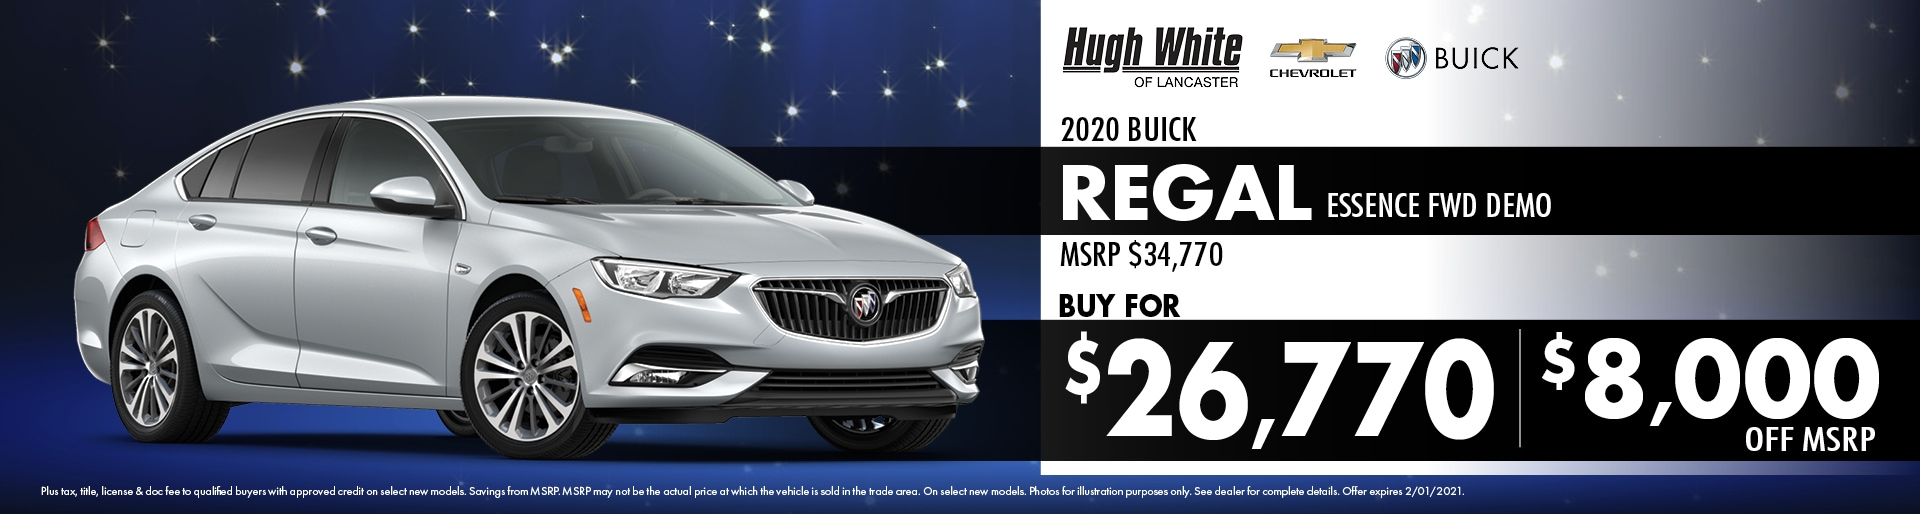 2020 Buick Regal Special Offer | Hugh White Chevy Buick Lancaster, OH